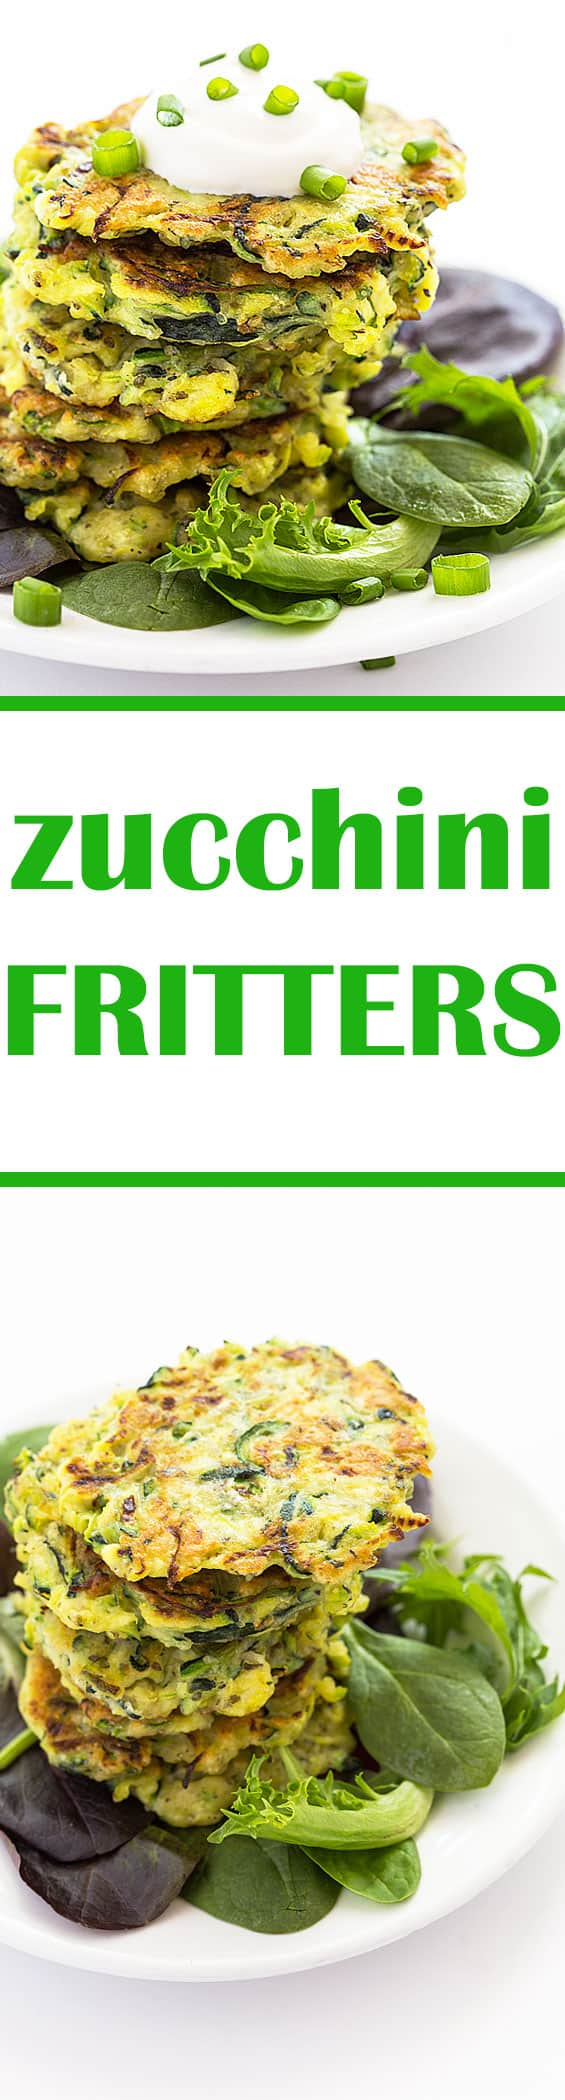 These easy Zucchini Fritters are a perfect way to use fresh zucchini this summer - A perfect appetizer, side dish or light lunch!